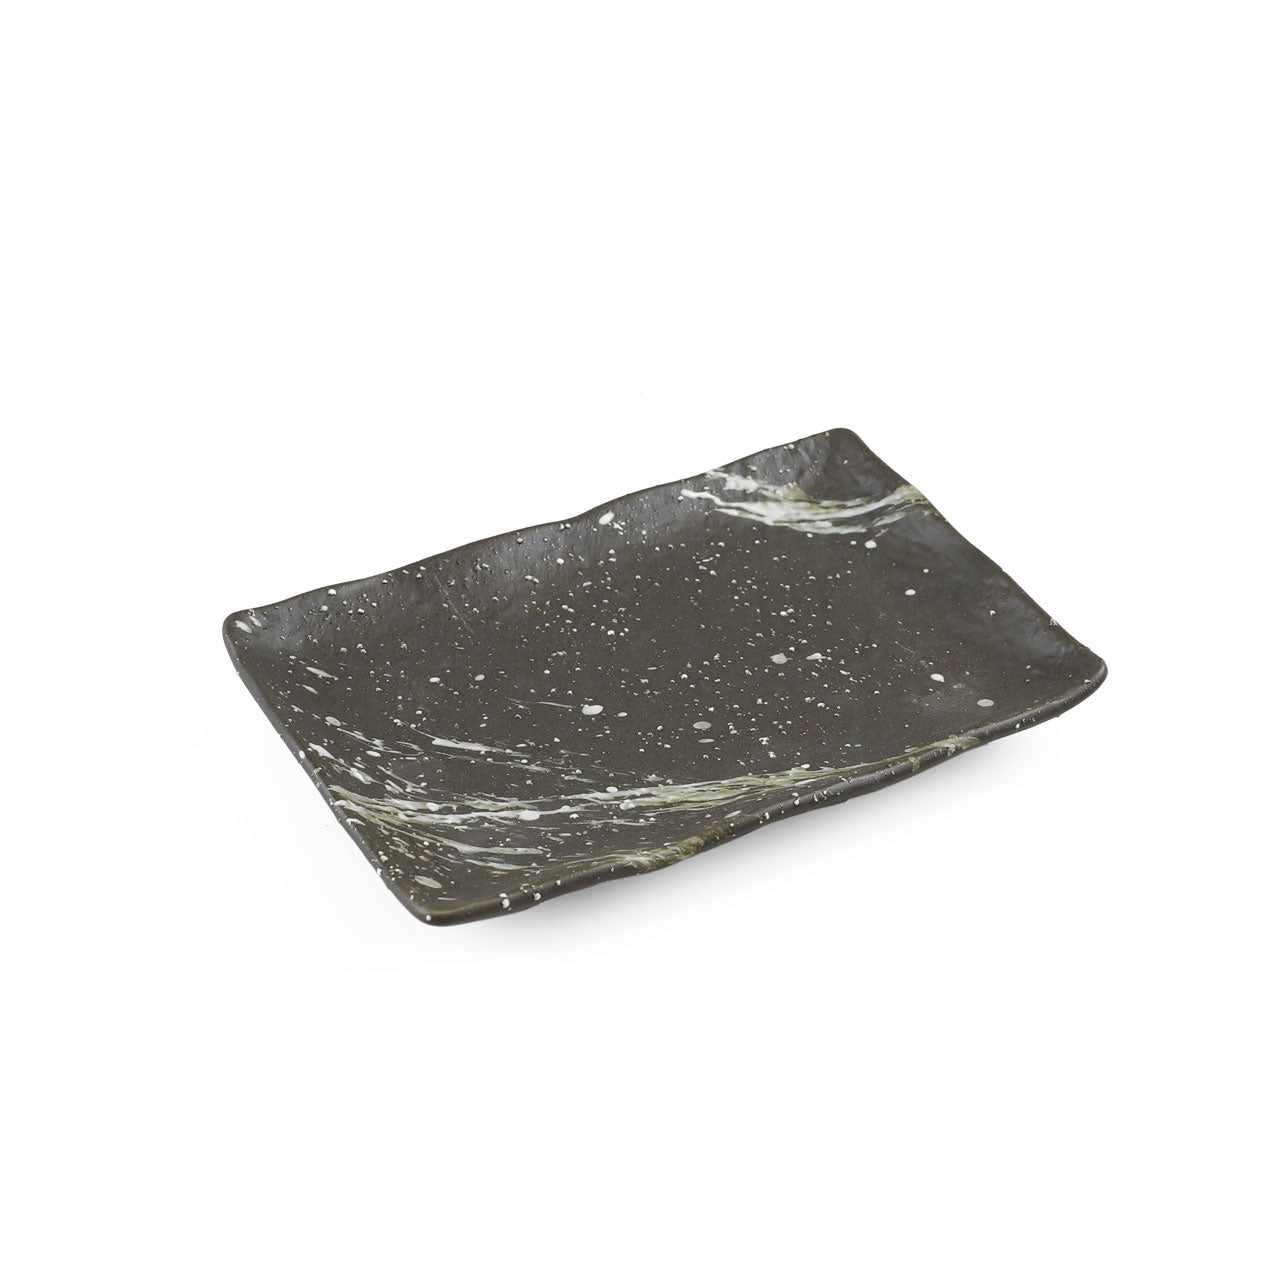 "Fubuki Charcoal Gray & White Splashed Matte Rectangular Plate 6.6"" x 4.4"""